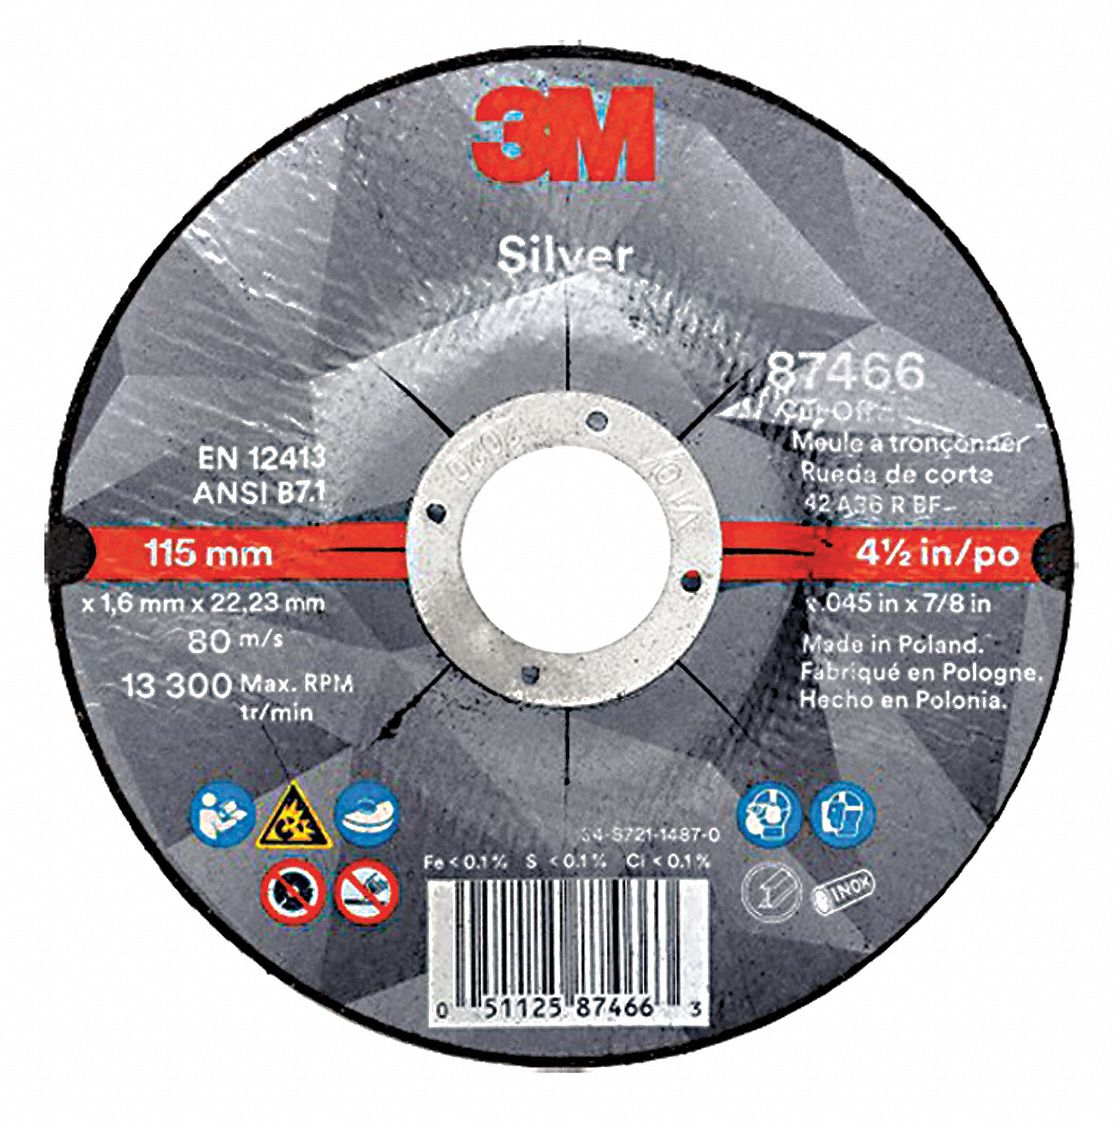 4 1/2 in,  Type 27 Ceramic Grain Abrasive Cut-Off Wheel,  7/8 in Arbor Hole Size